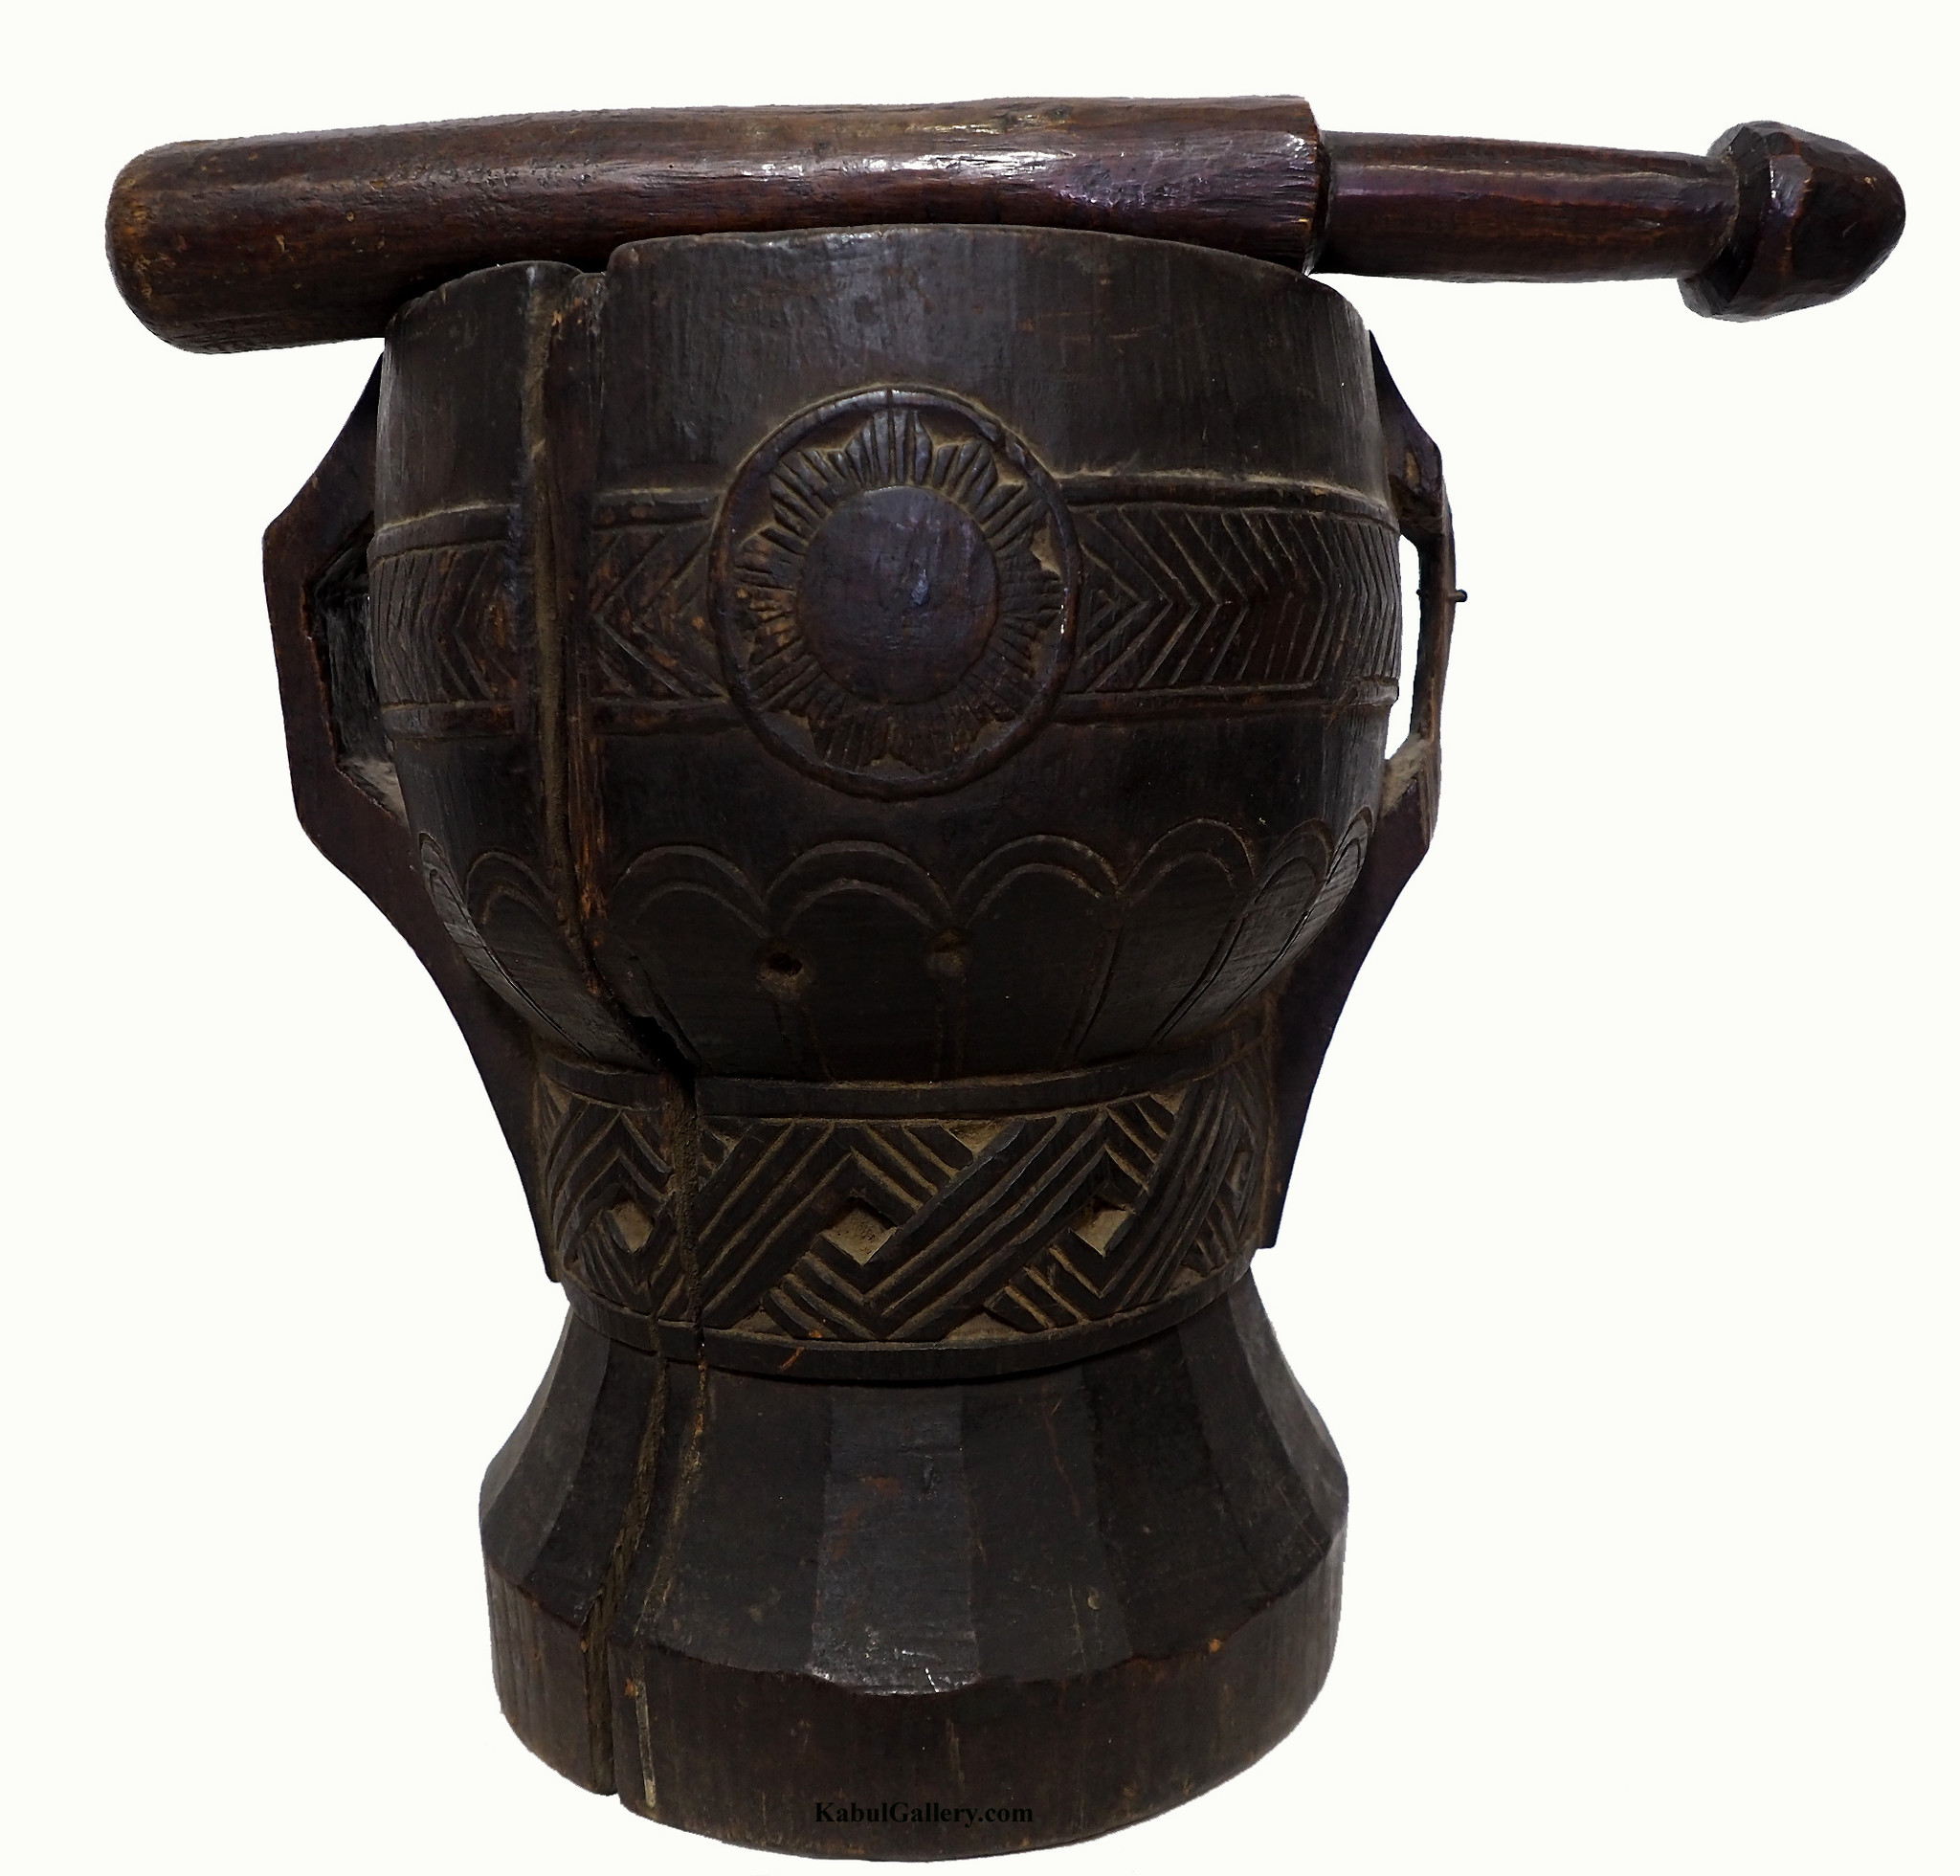 ANTIQUE NURISTANI WOODEN MORTAR  AND PESTLE No: A